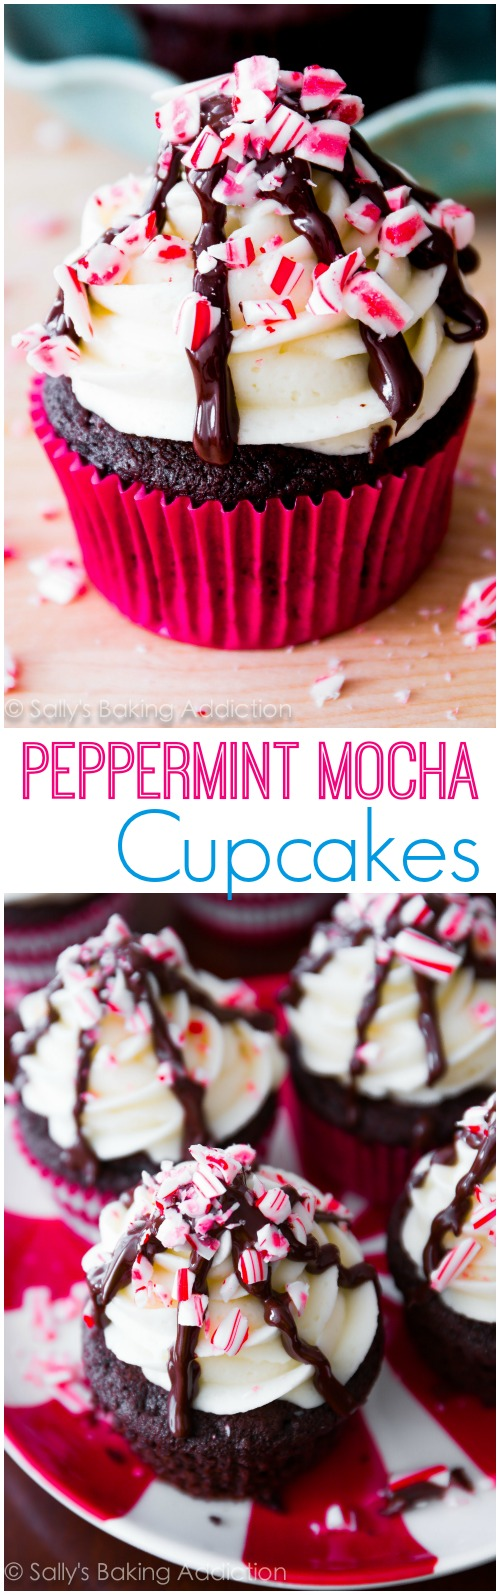 Peppermint-Mocha-Cupcakes-by-Sallys-Baking-Addiction